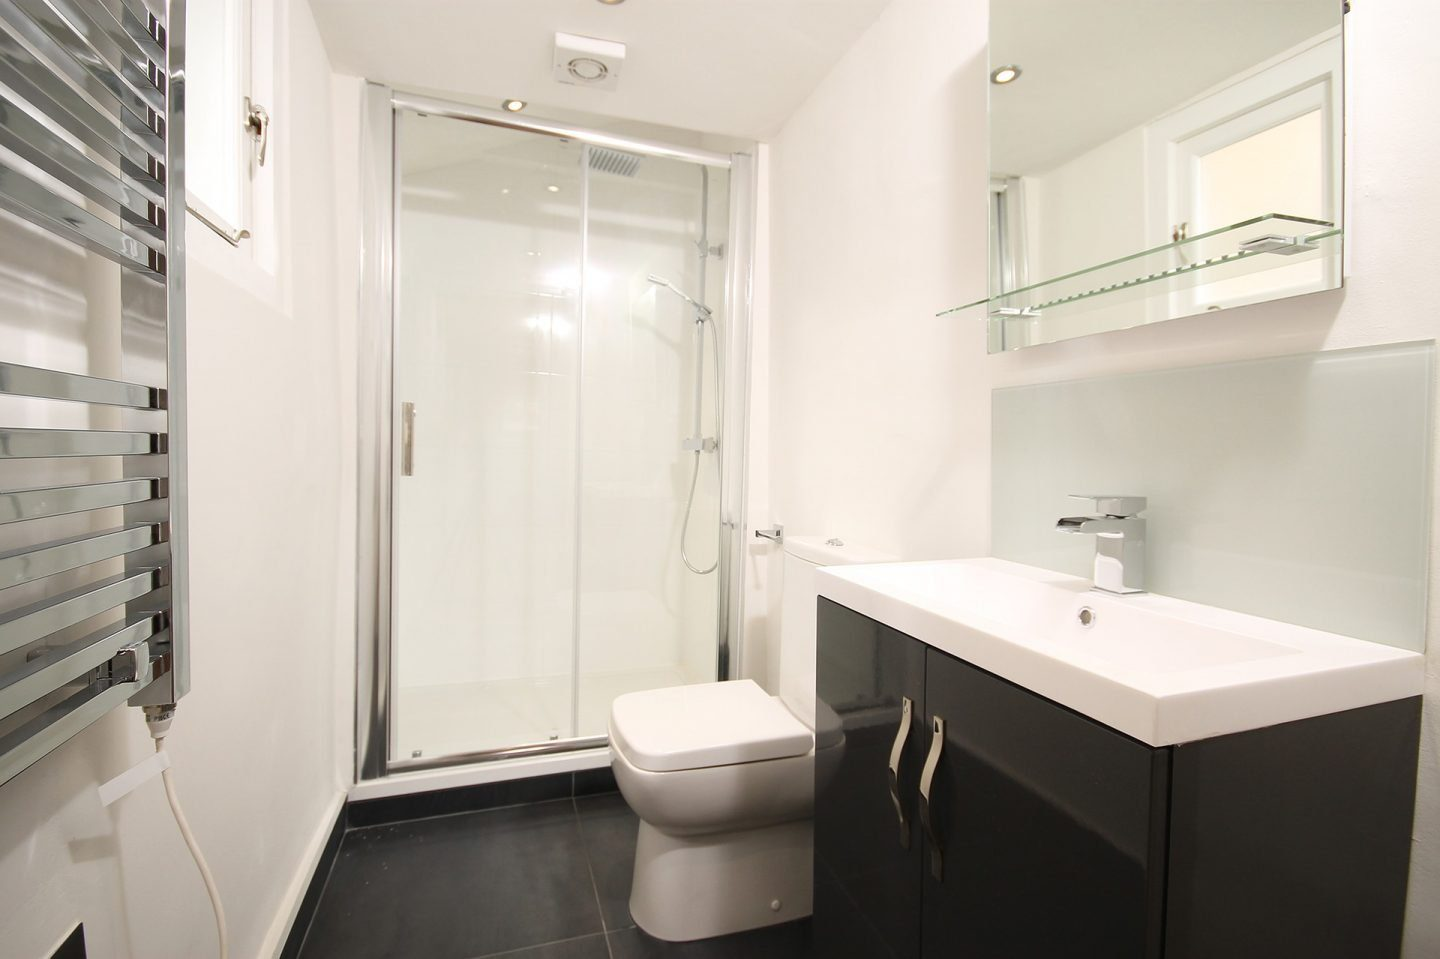 A bathroom with a shower that has glass doors. The floor is tiled in black